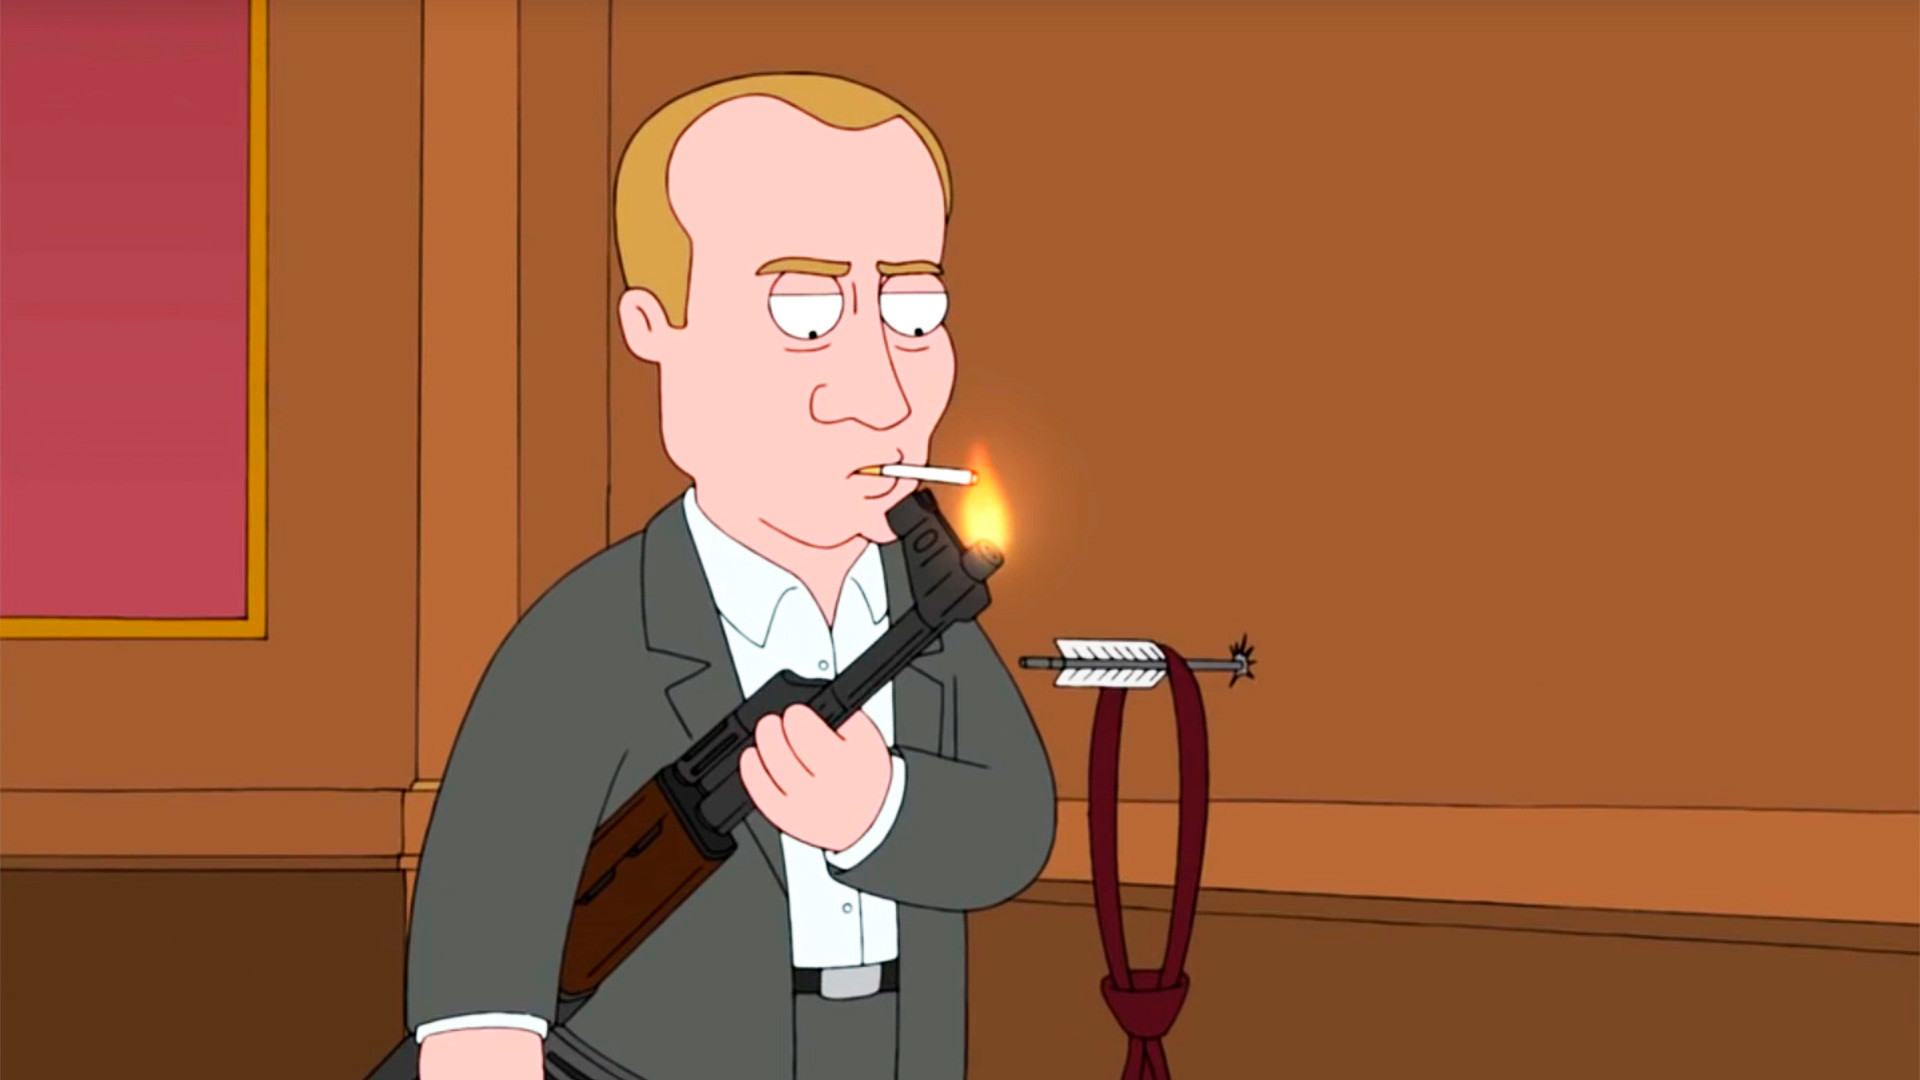 Vladimir Putin dalam serial kartun Family Guy.